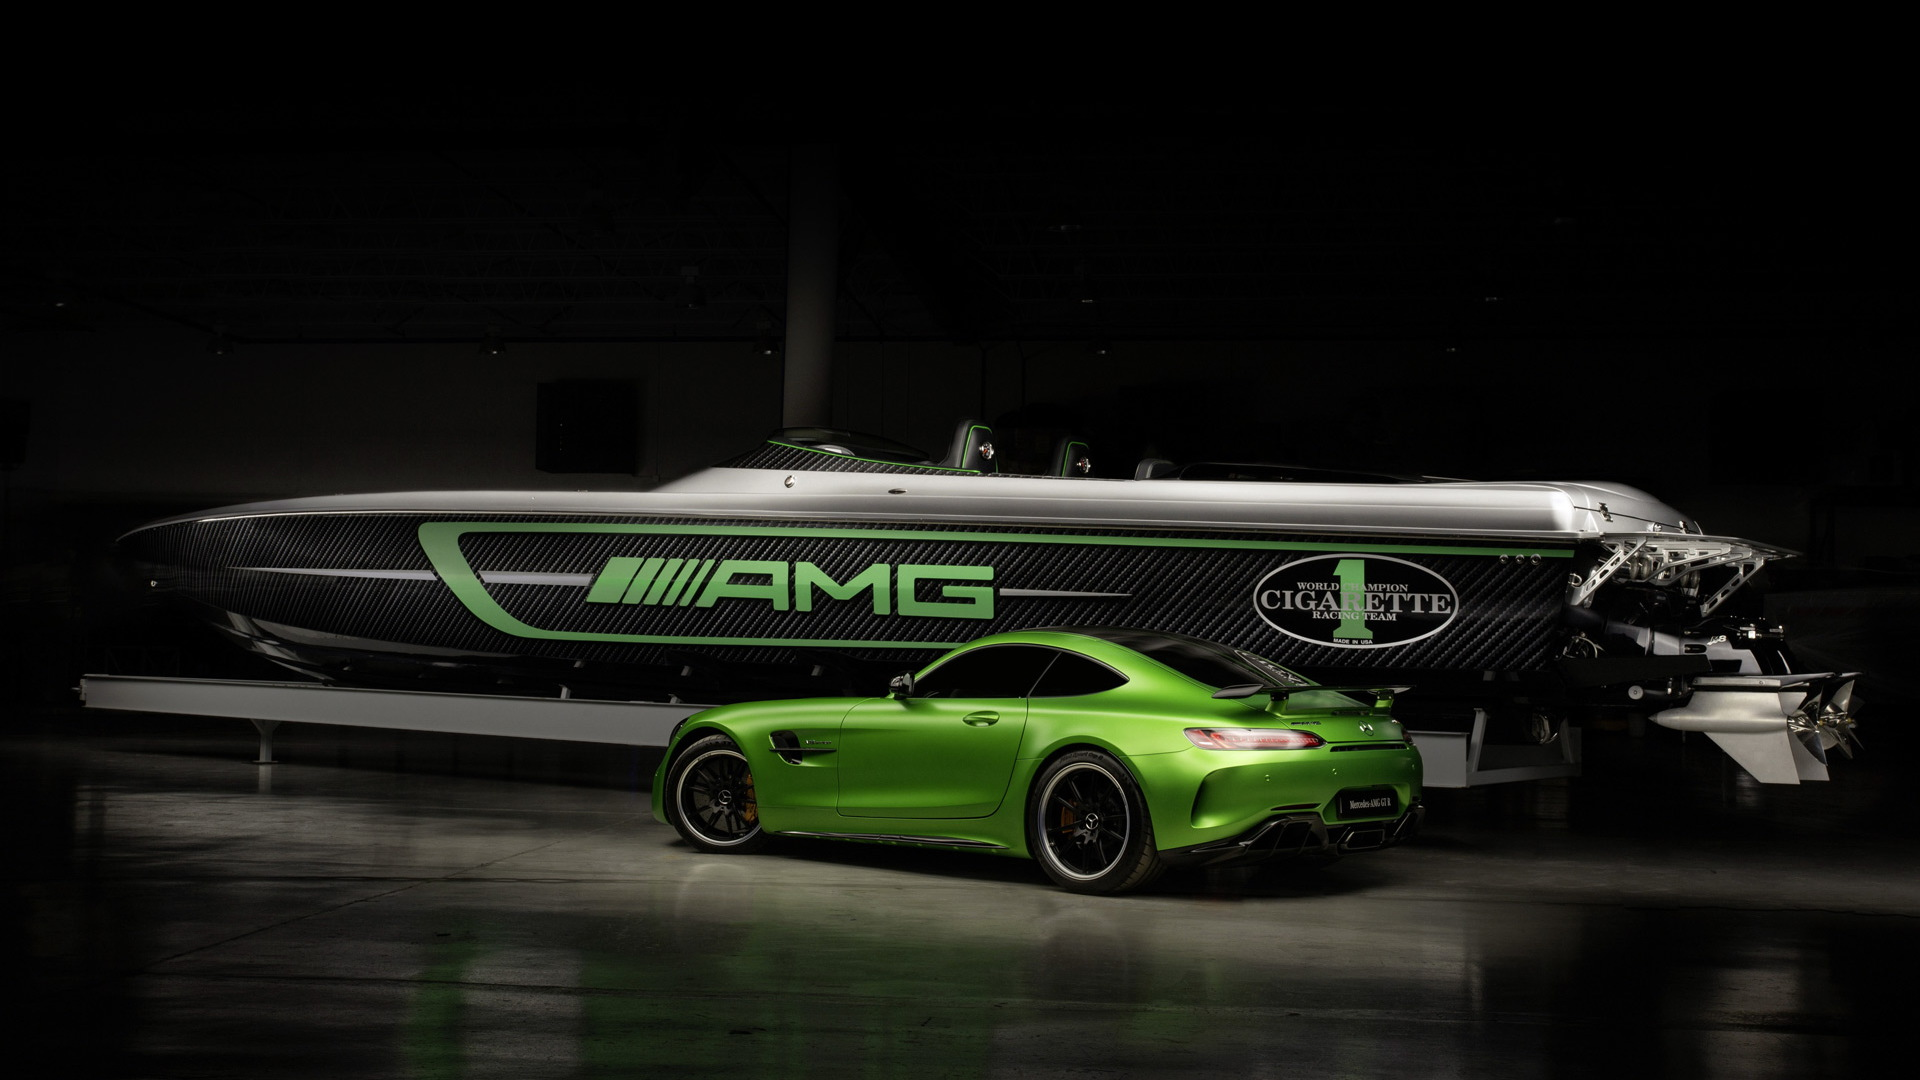 2017 Cigarette Racing 50' Marauder AMG inspired by the 2018 Mercedes-AMG GT R